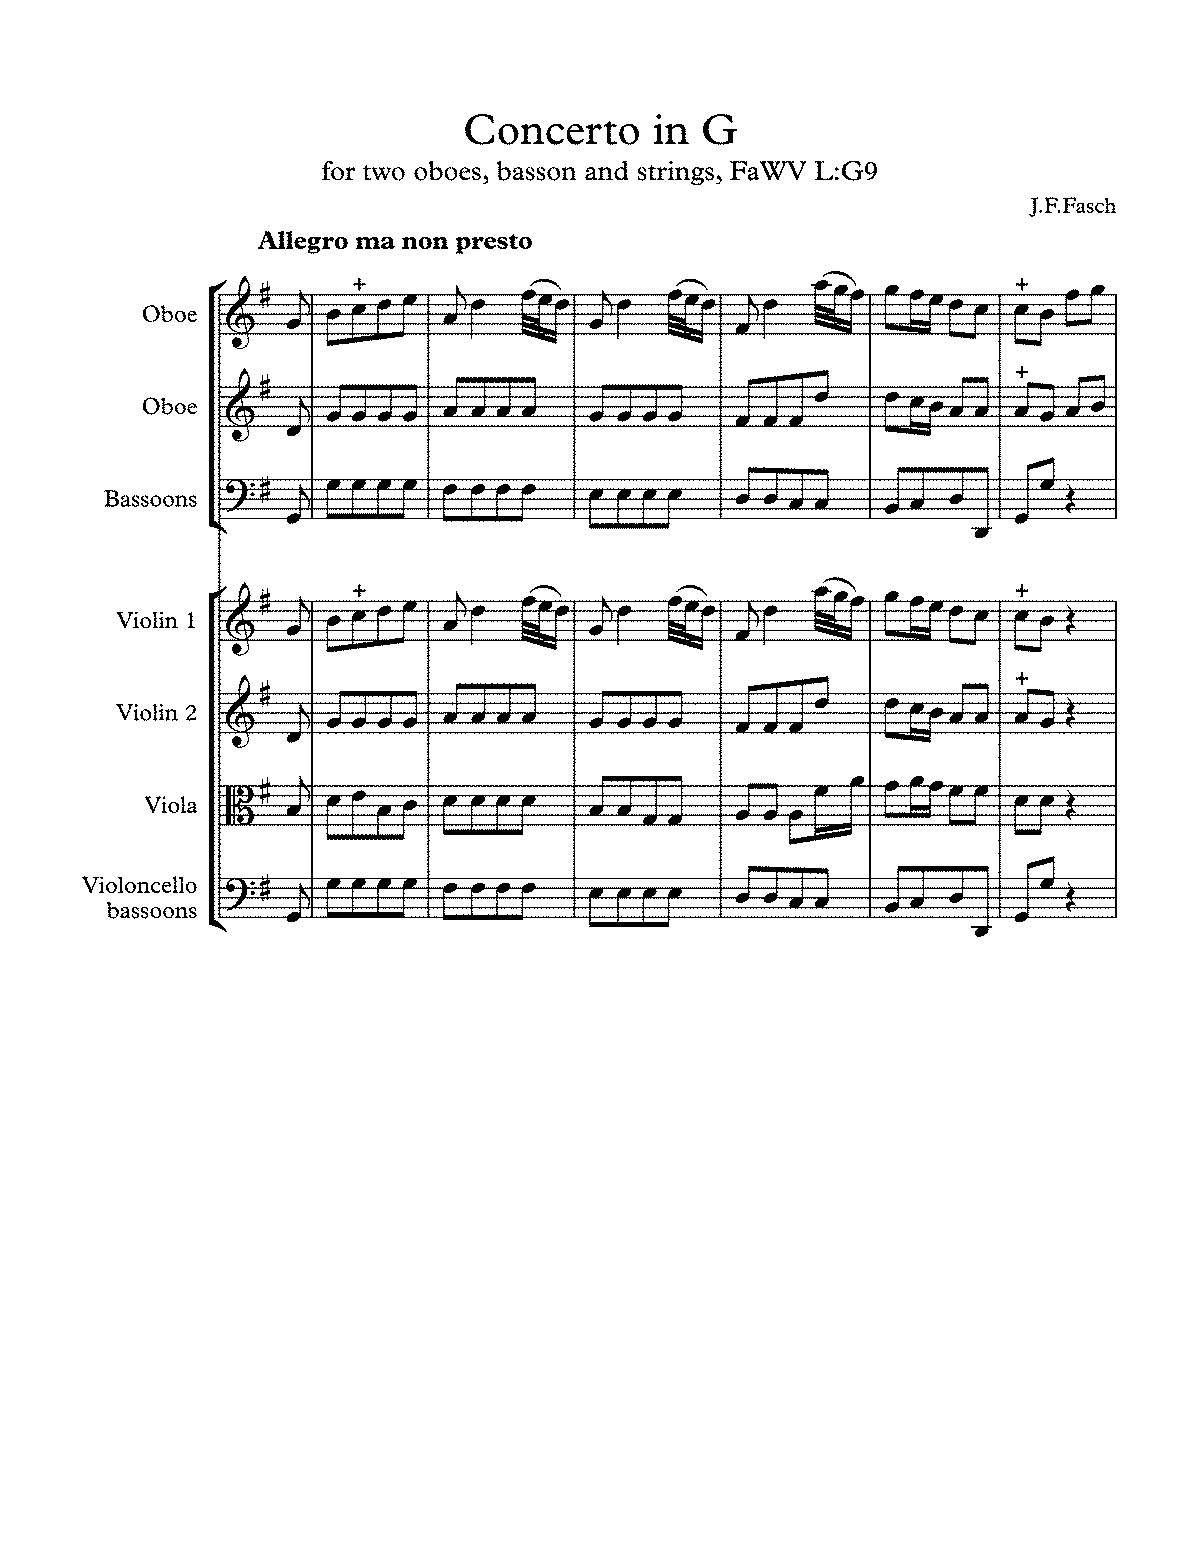 PMLP330580-Fasch Concerto in G for 2 oboes.pdf